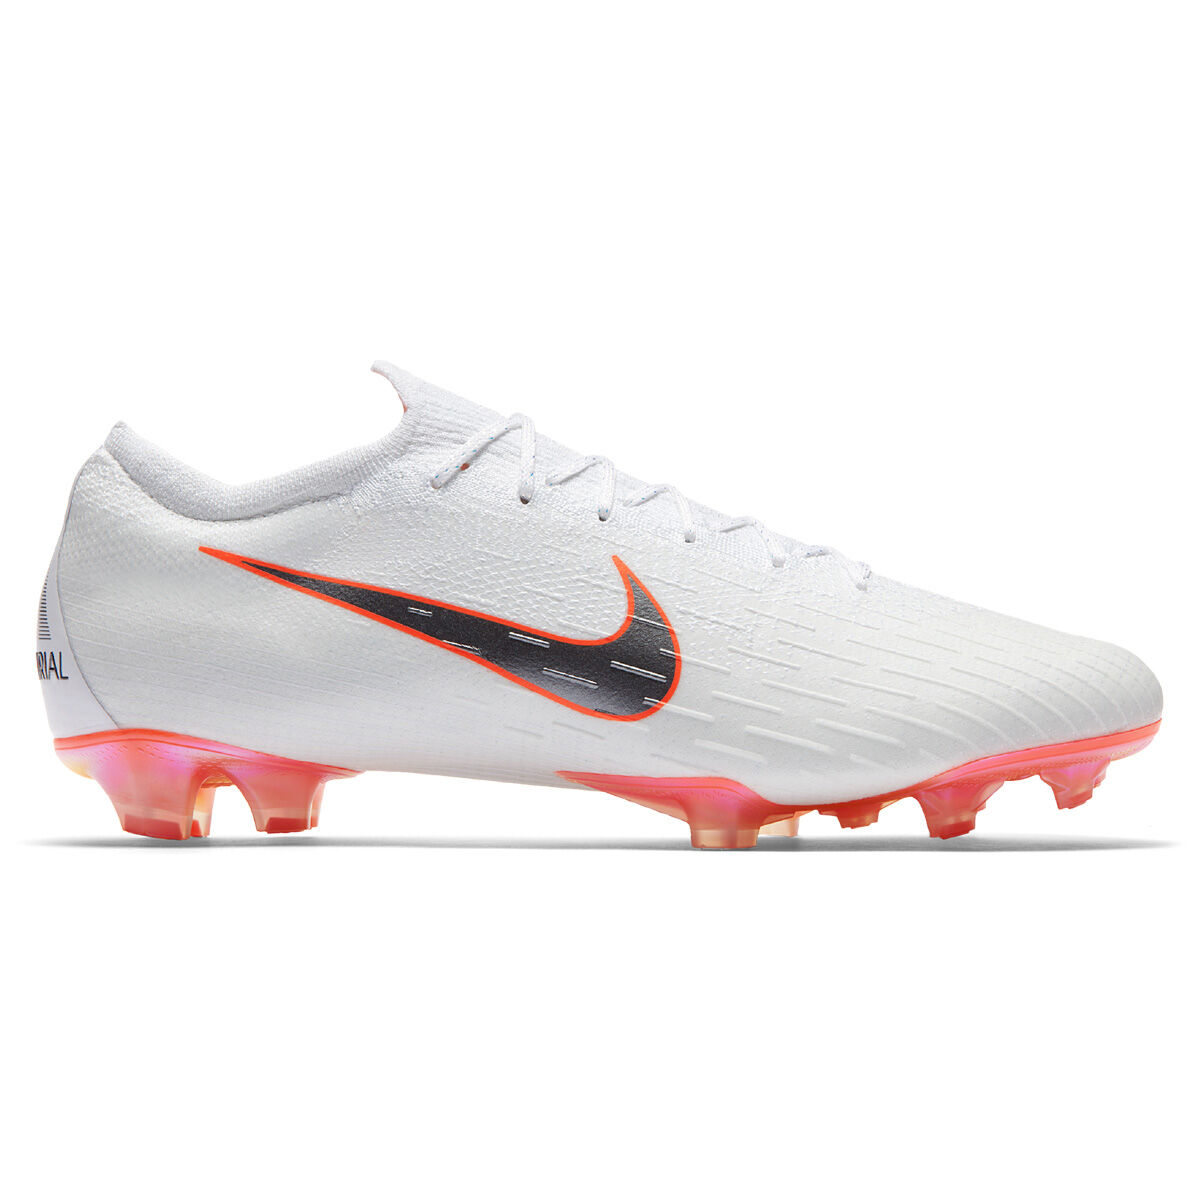 a9d7939ea ... coupon nike mercurial vapor xii elite mens football boots white grey us  7.5 white d25f2 9131a